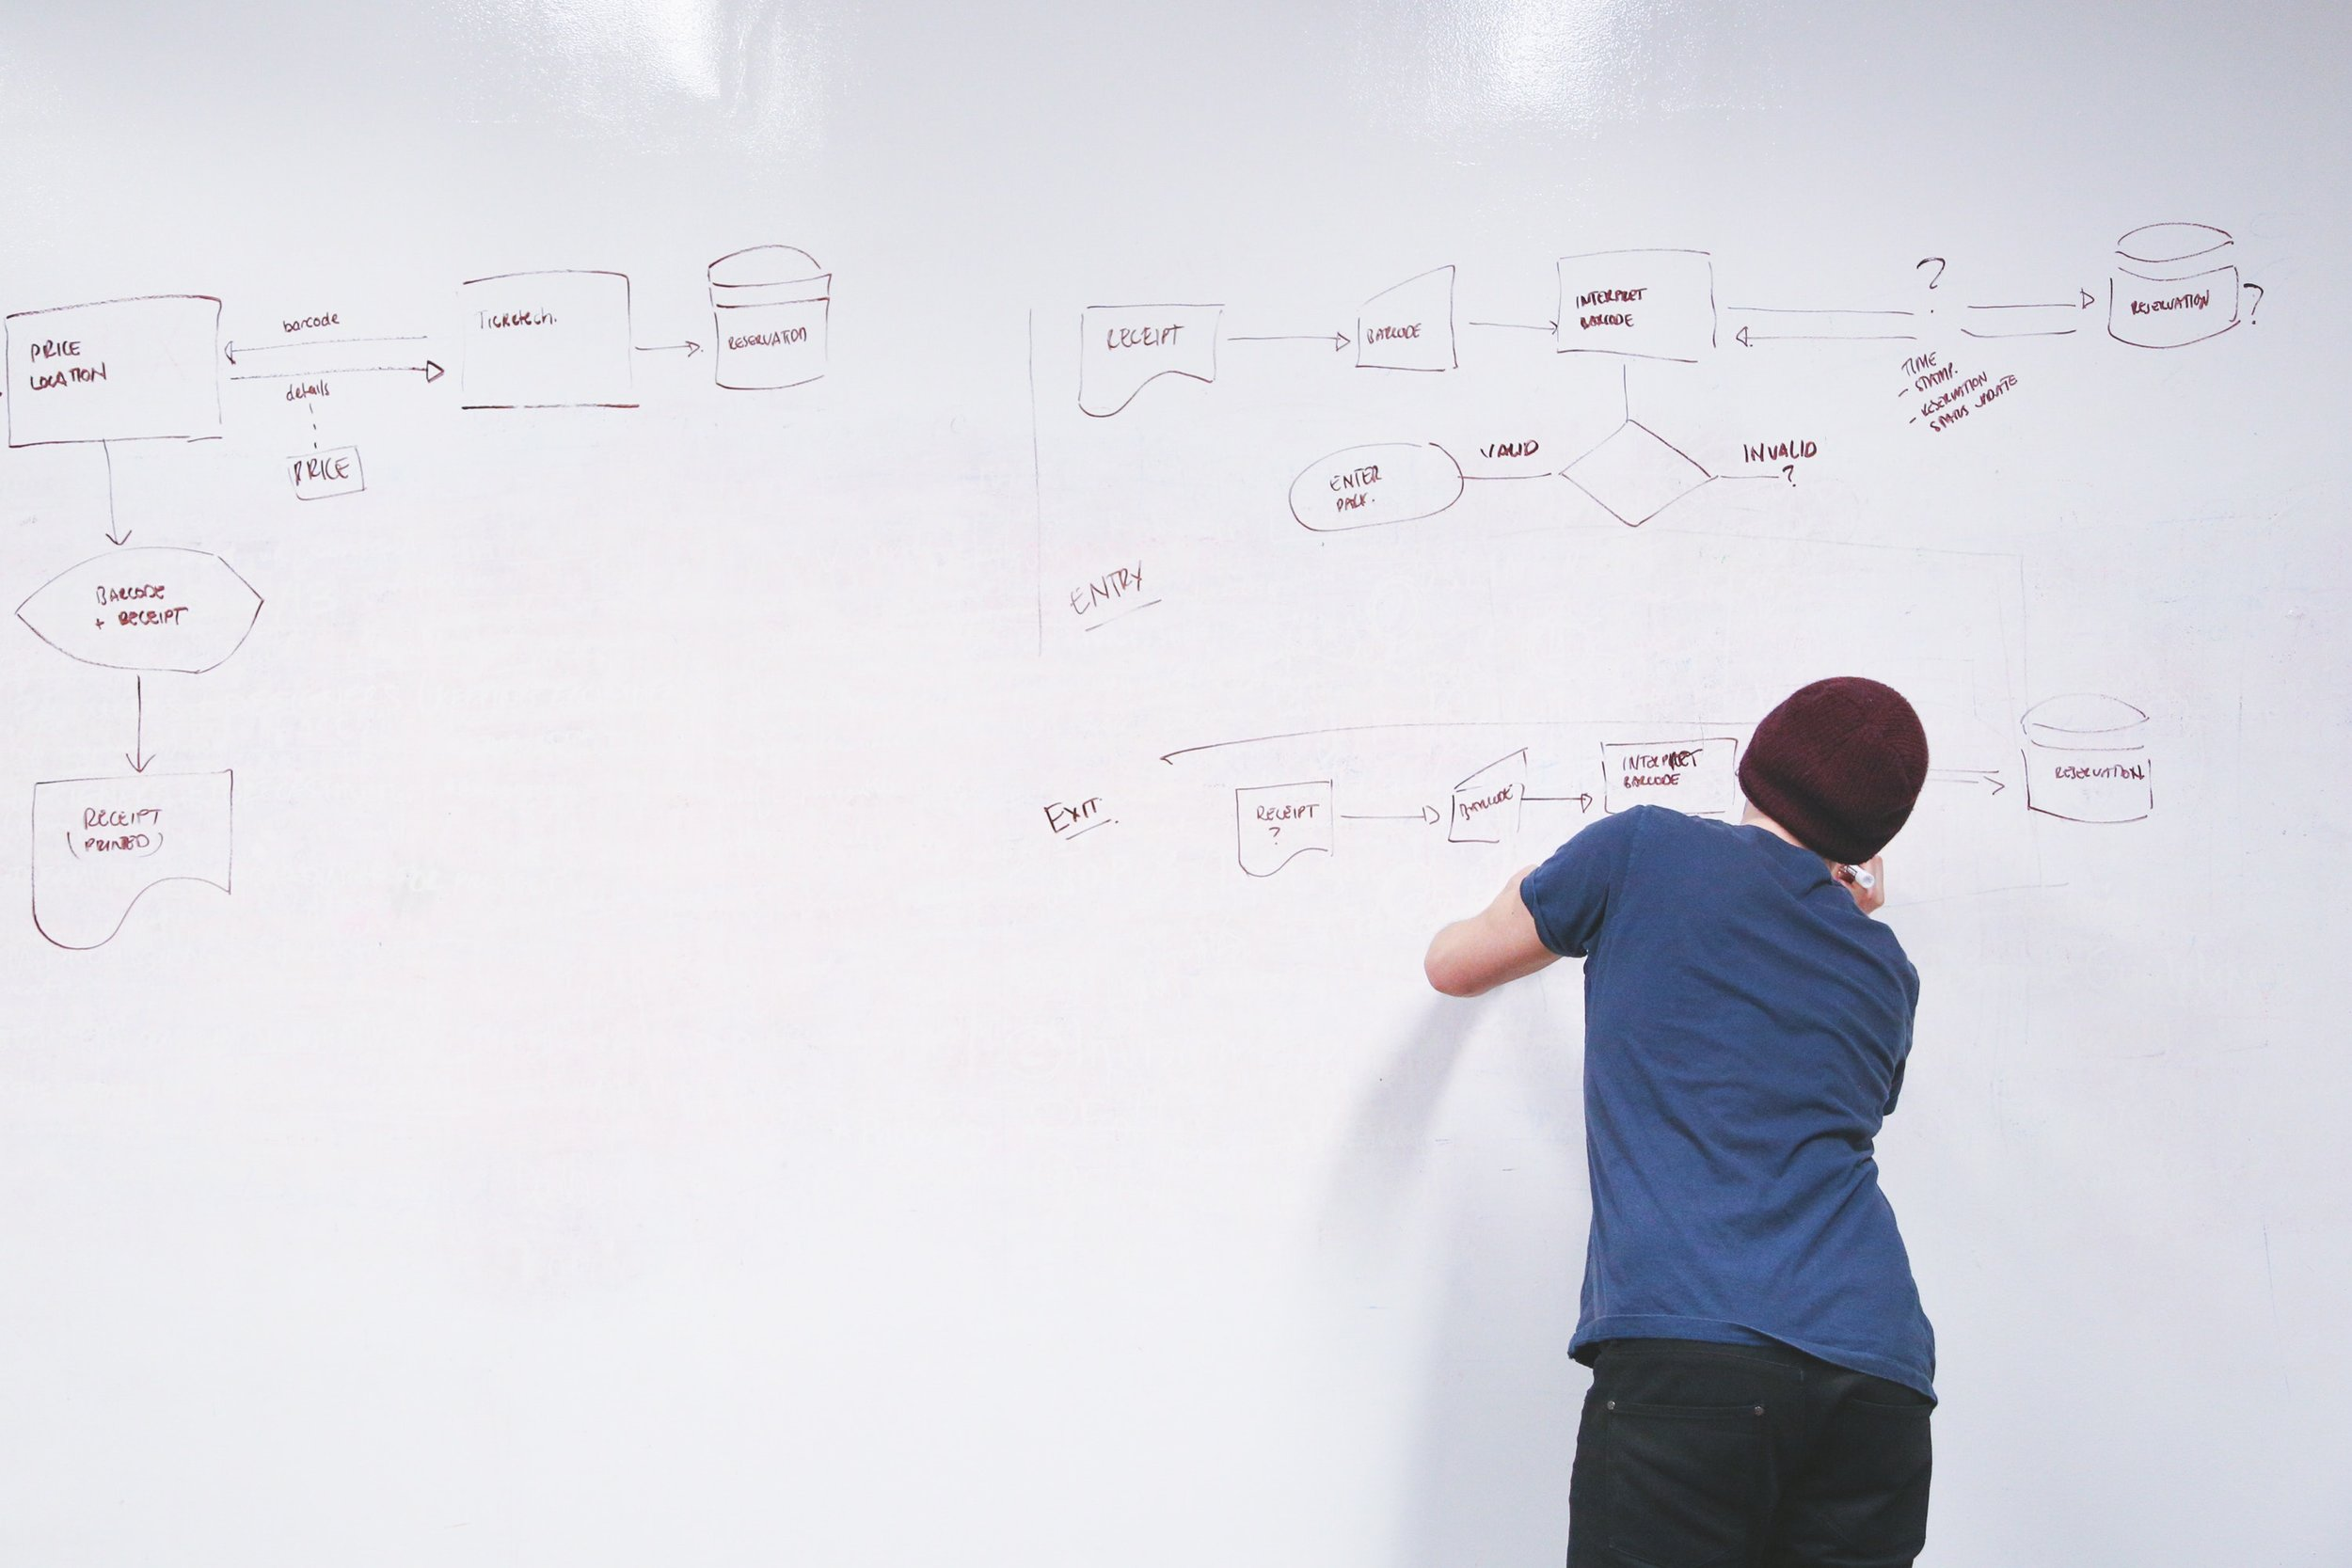 A process map being drawn on a whiteboard.